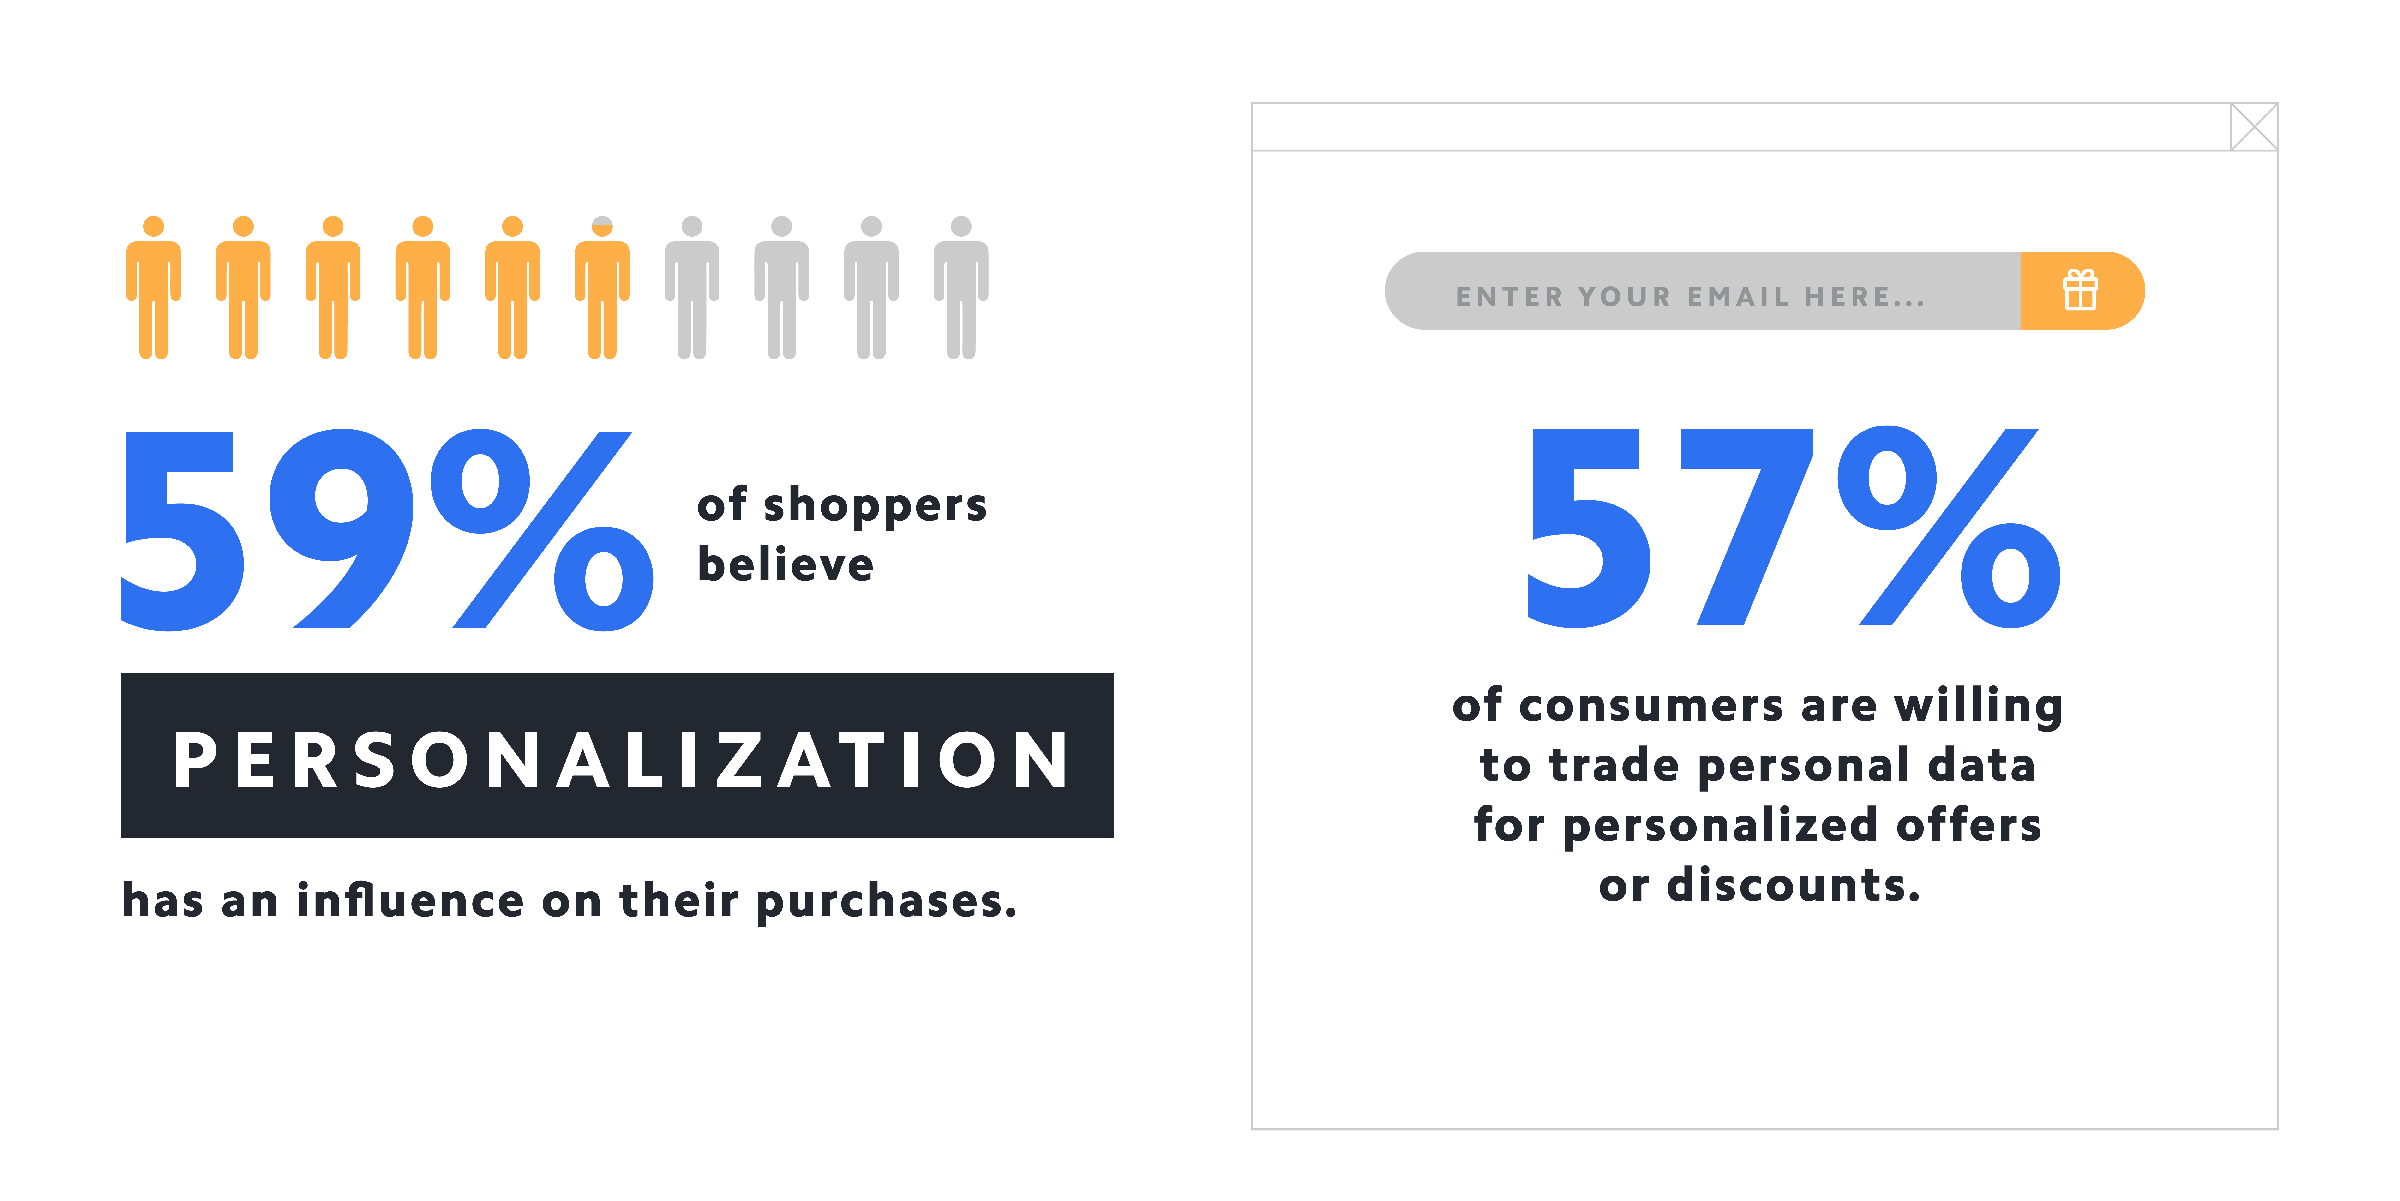 59% of shoppers believe personalization has an influence on their purchases.